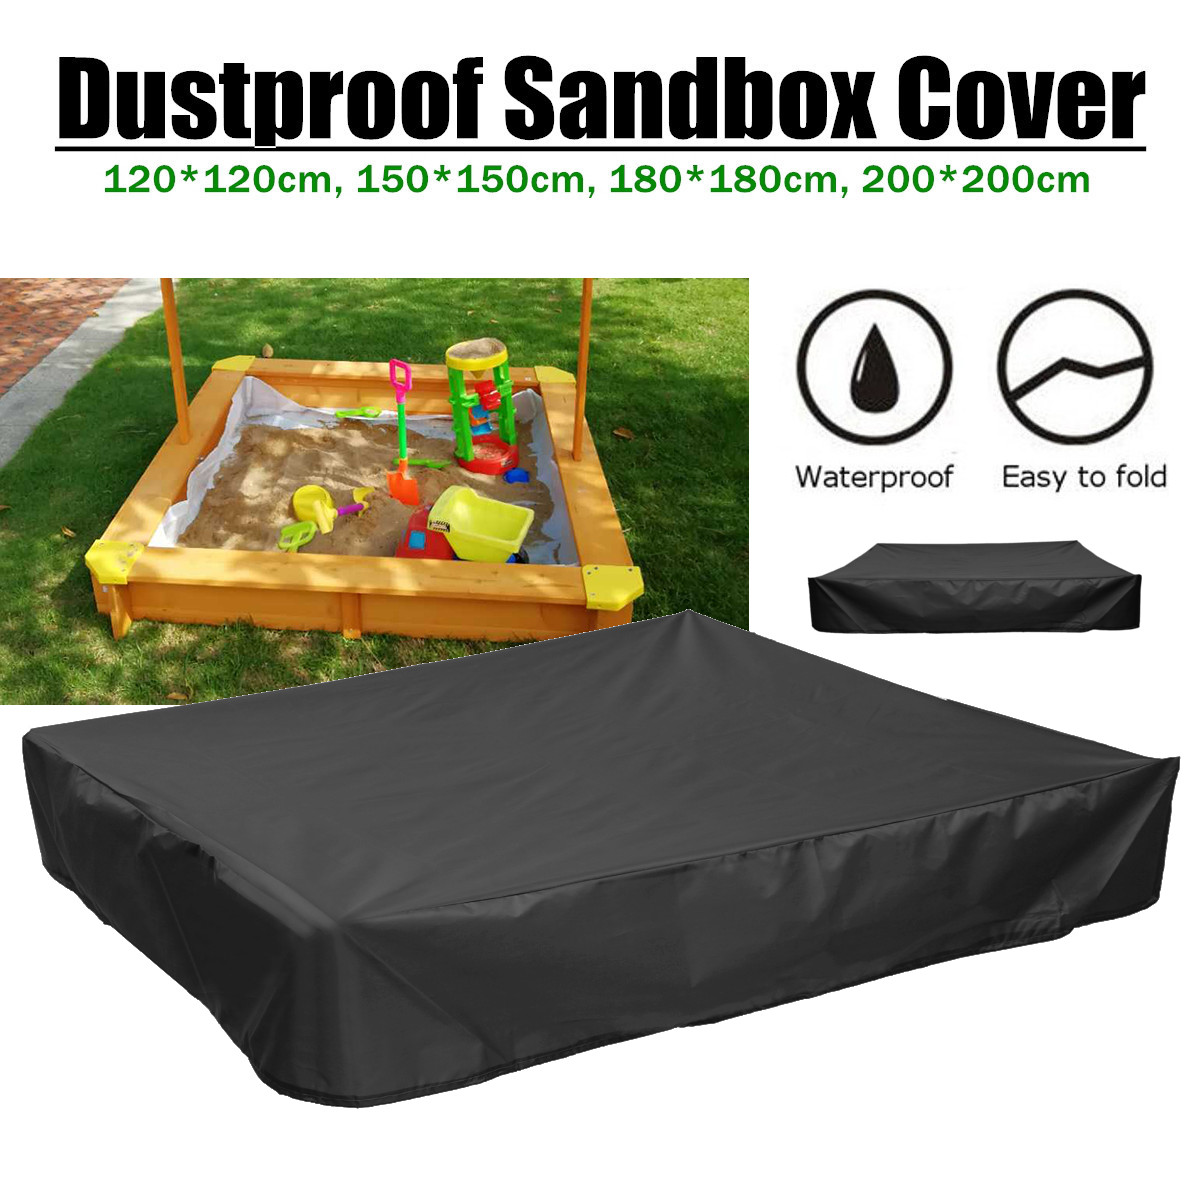 Multifunction Garden Sandbox Sandpit Dust Cover Oxford Cloth Drawstring Canopy Dustproof Waterproof Shelter 4 Sizes Square